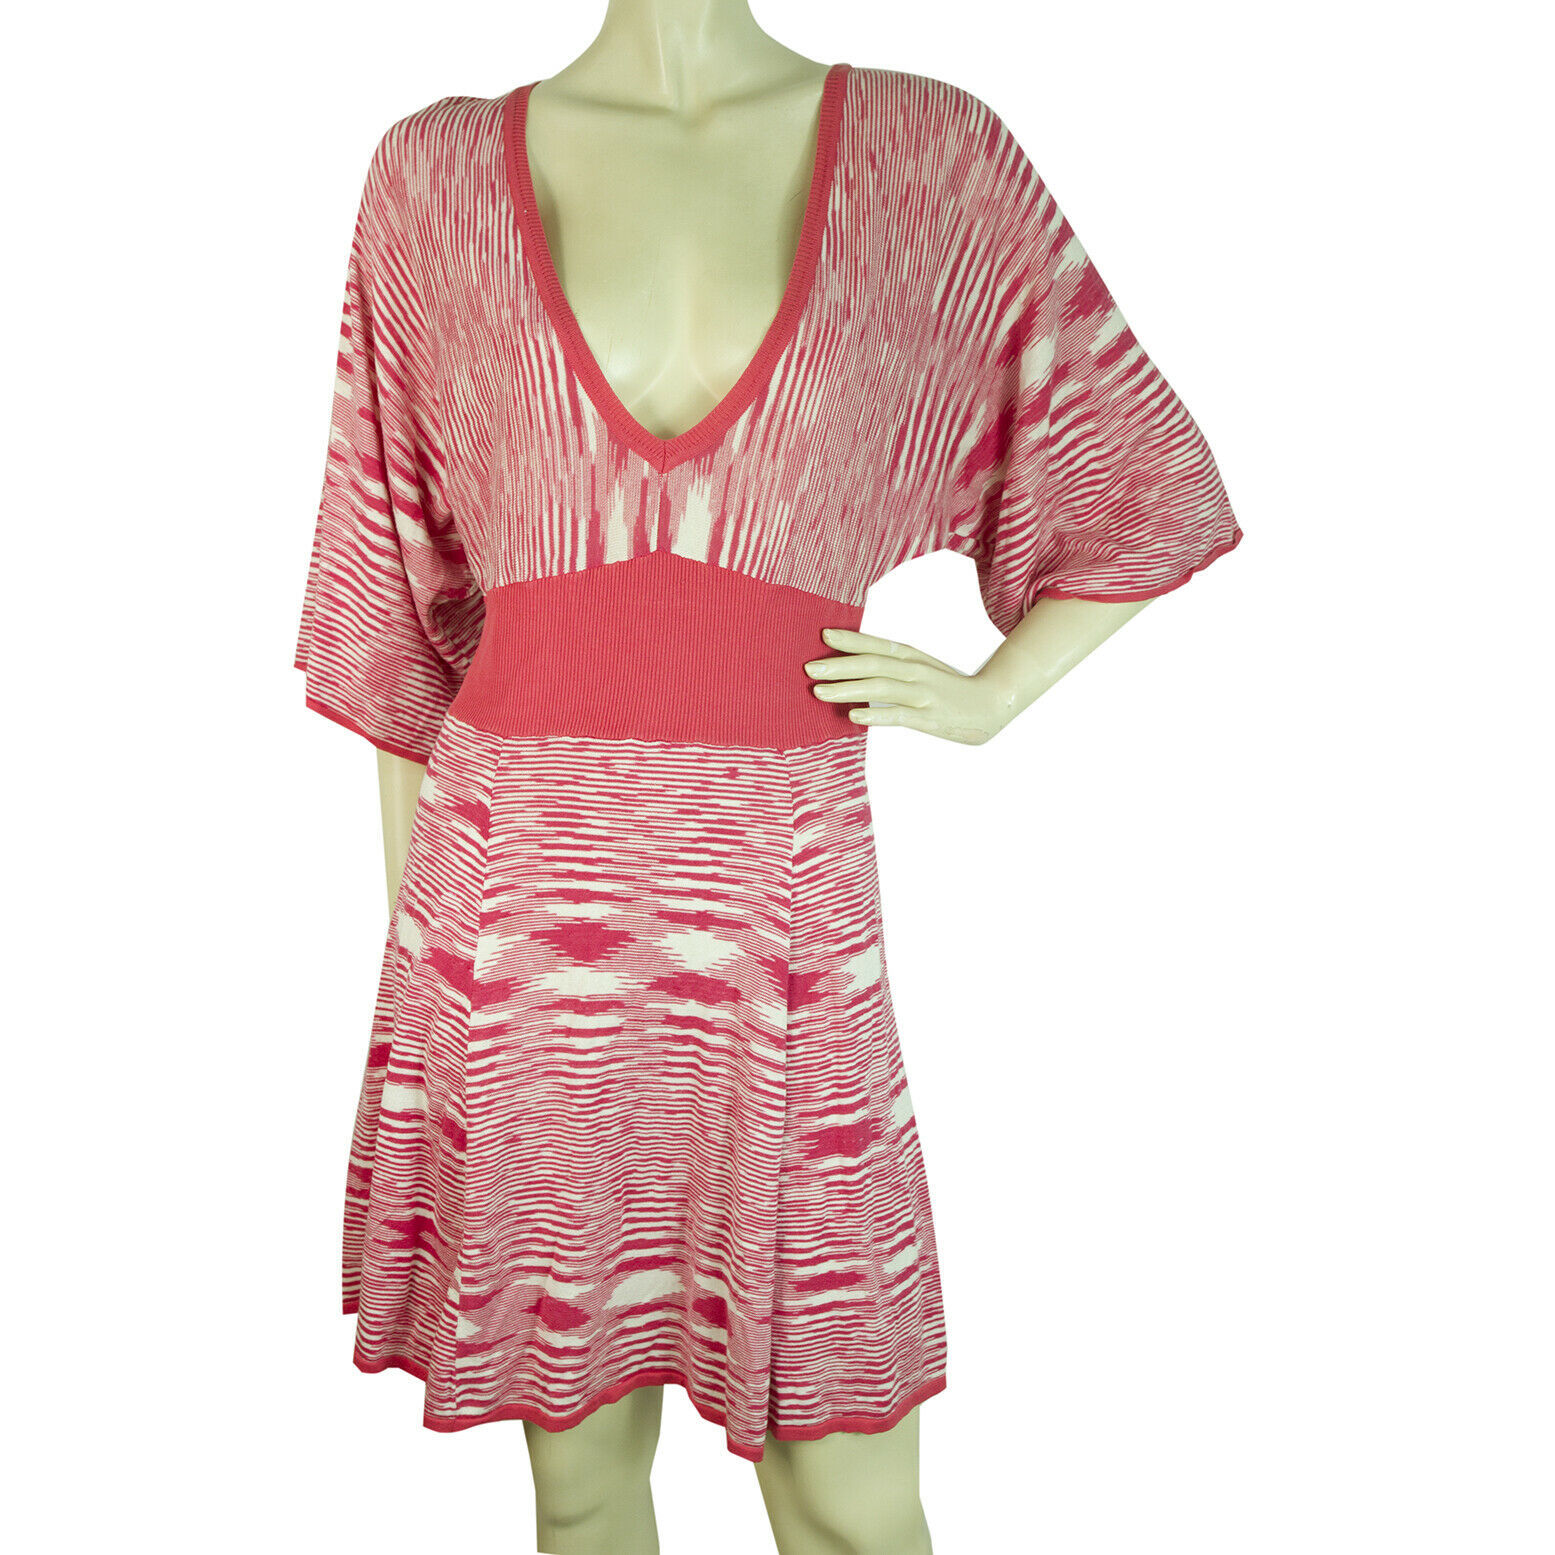 Primary image for BCBG Maxazria Fuchsia White Striped V Silk Cotton Knit Tunic Mini Dress size L